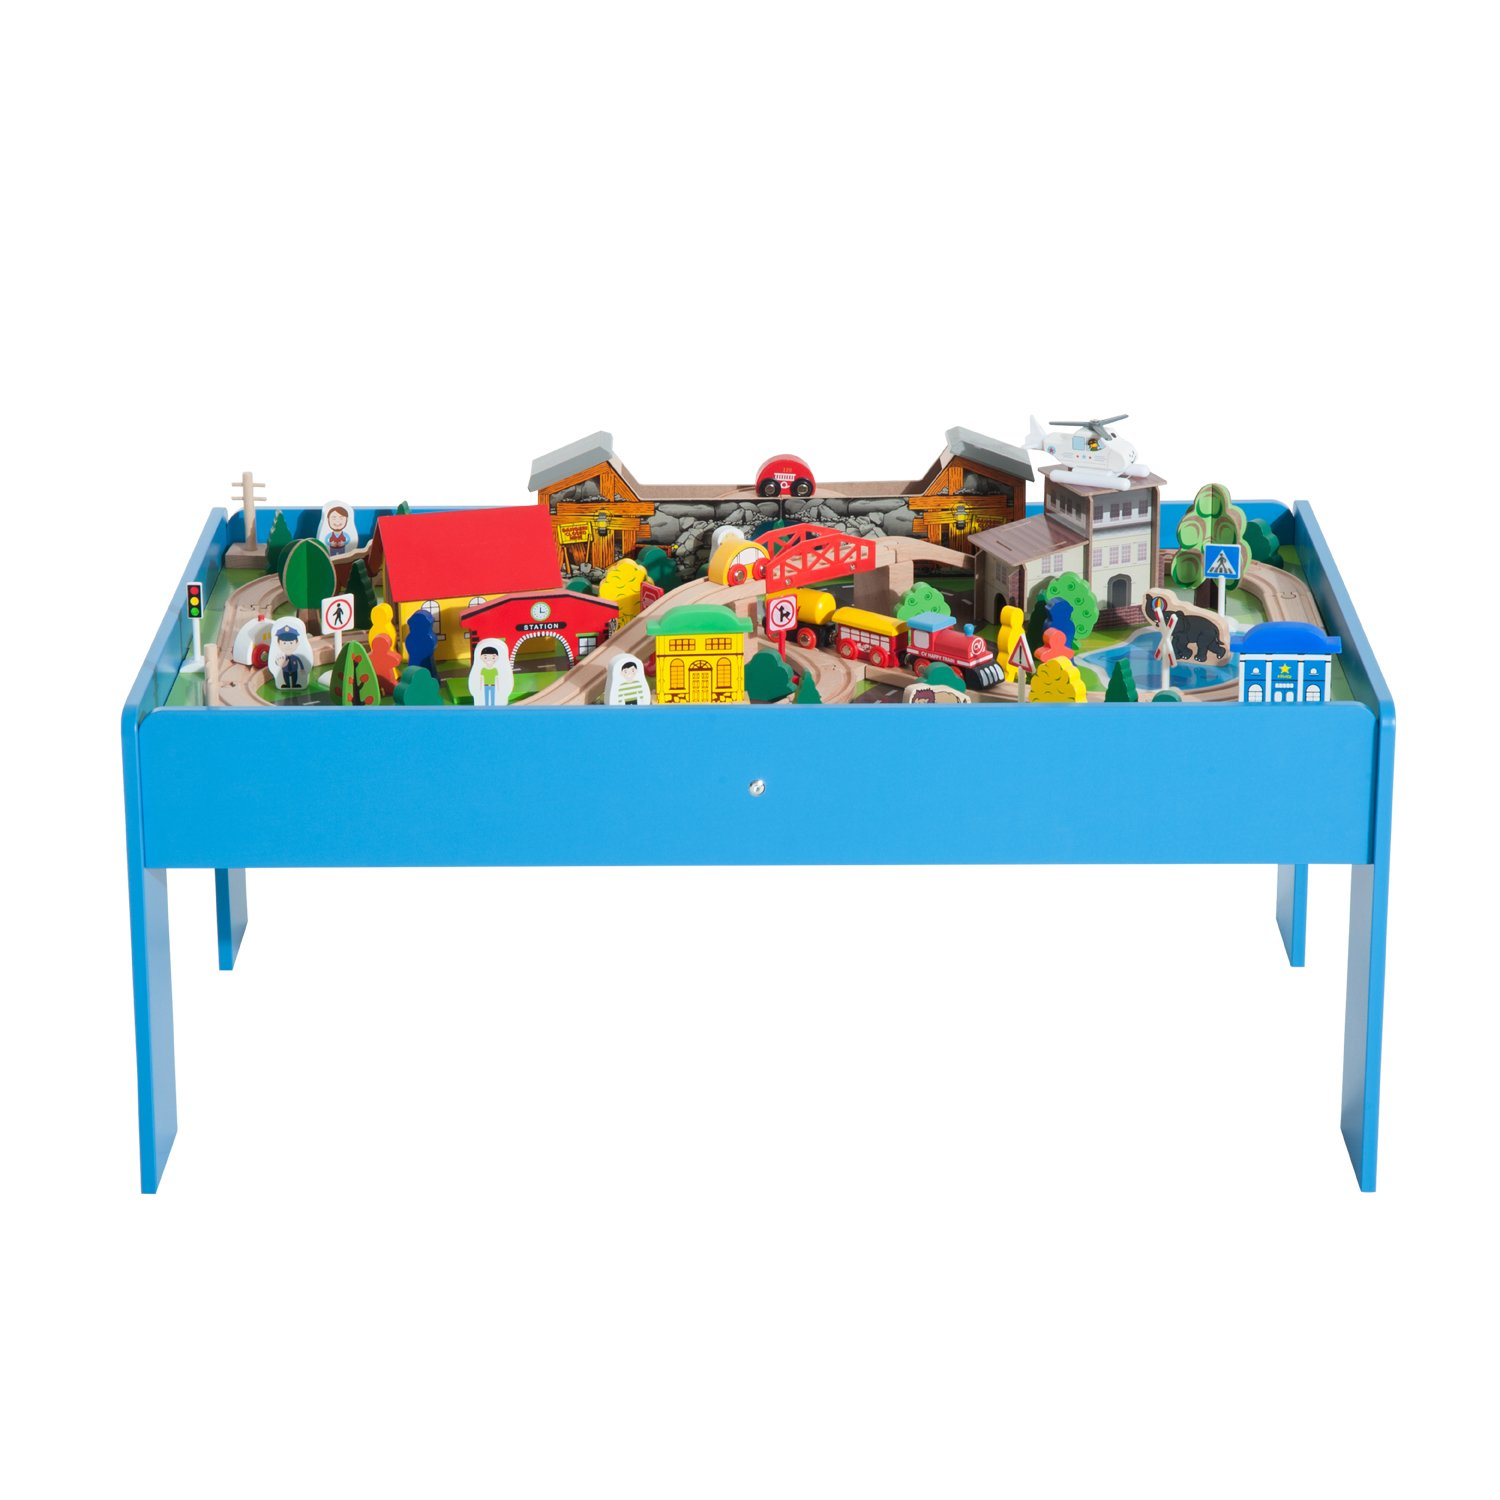 Qaba 108 Piece Wooden Kids Train Set and Activity Play Table